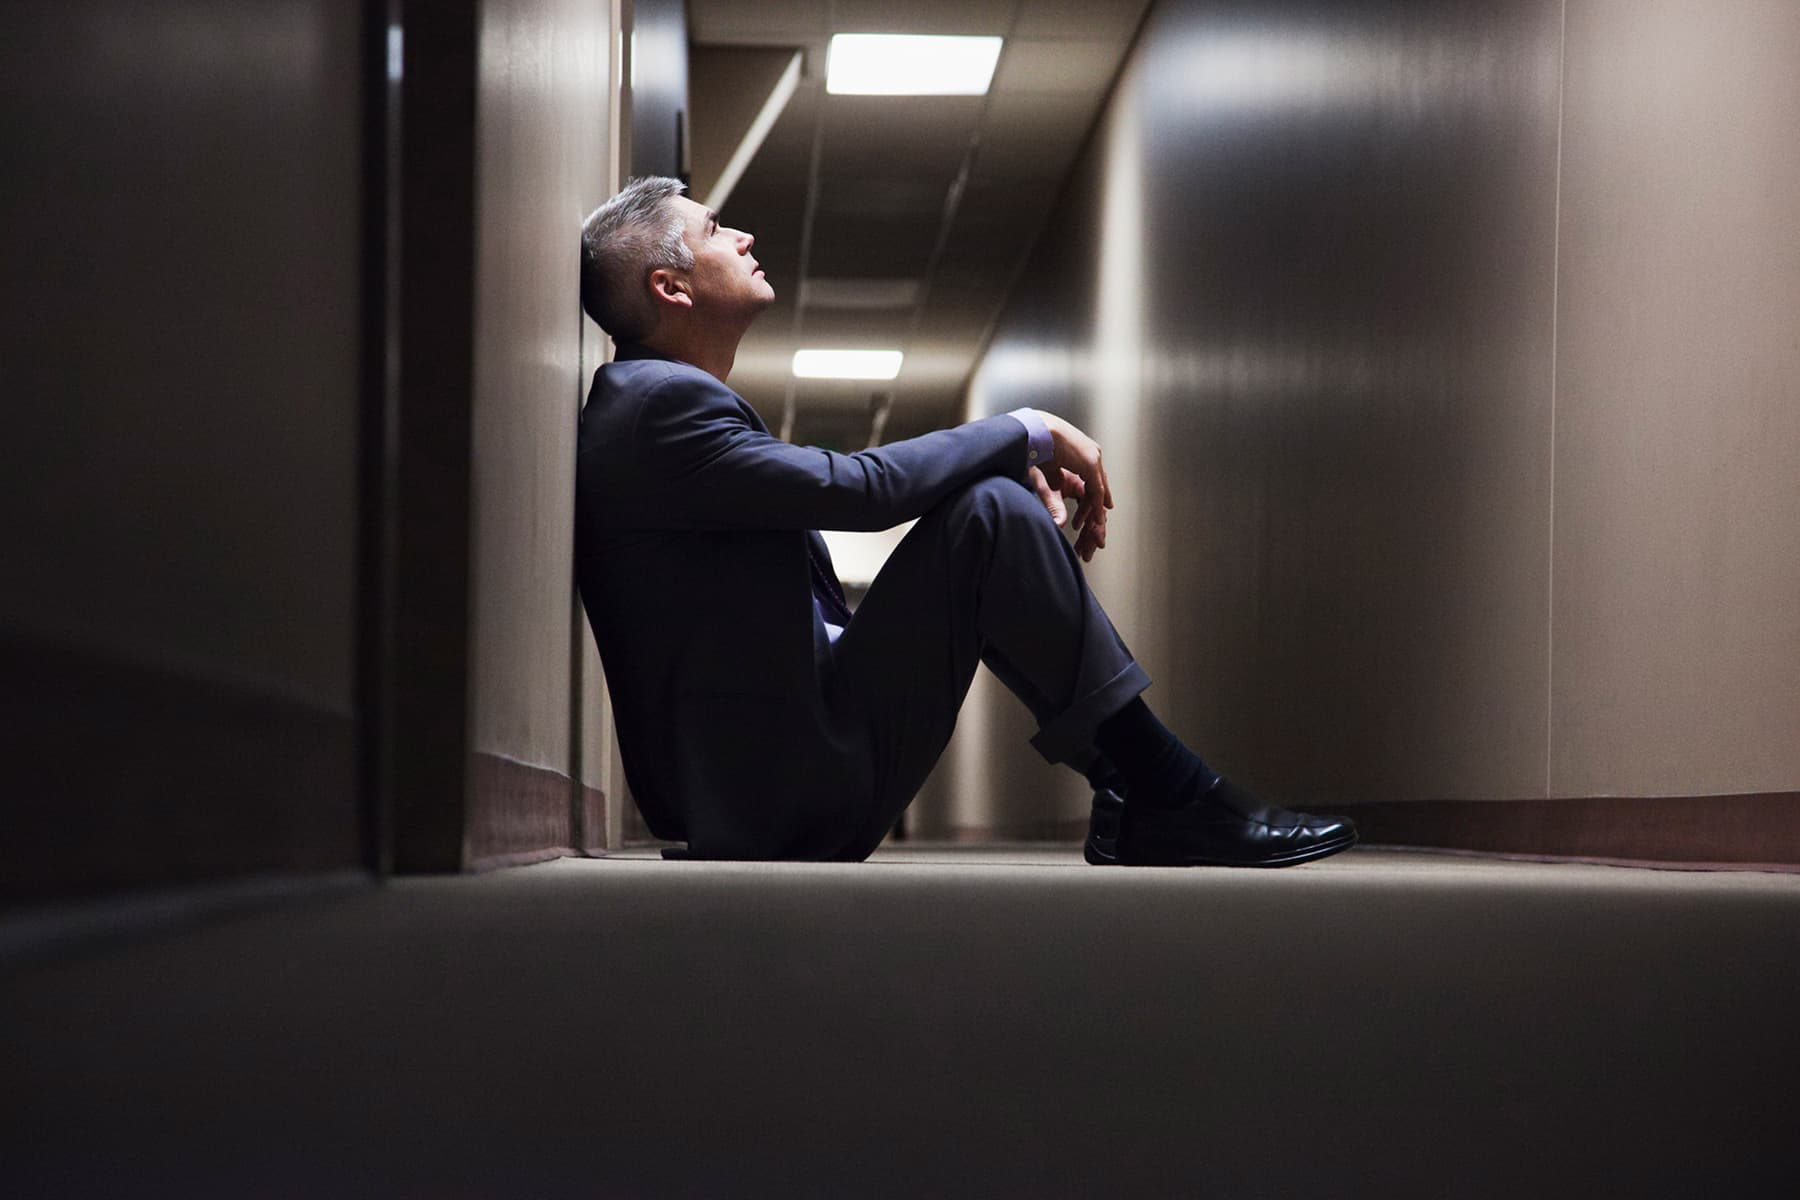 Could Propecia Up Young Men's Suicide Risk? thumbnail